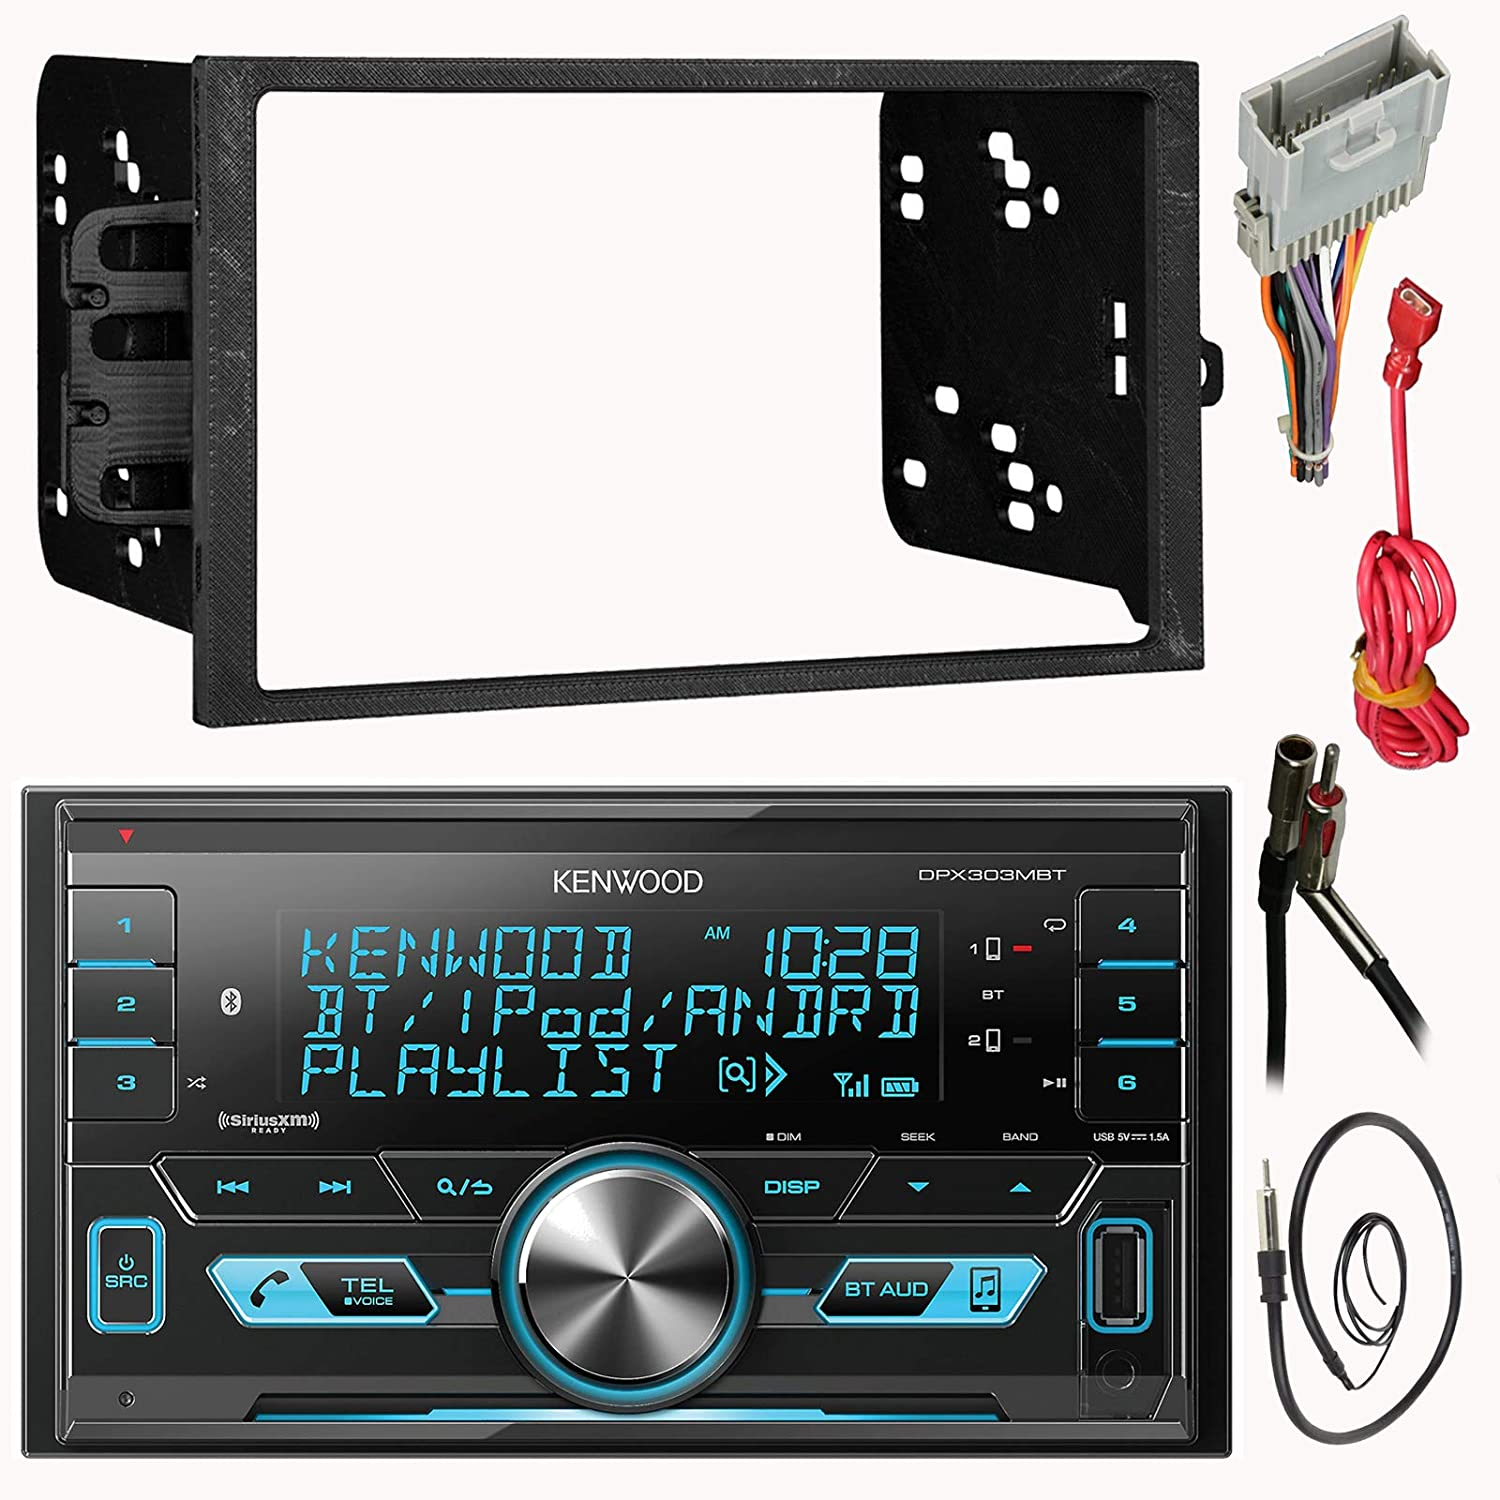 Kenwood Double 2 Din CD MP3 Car Stereo Receiver Bundle Combo with Metra installation kit for car stereo Wire Harness Enrock 22 Radio Antenna with Adapter Fits Most GM Vehicles